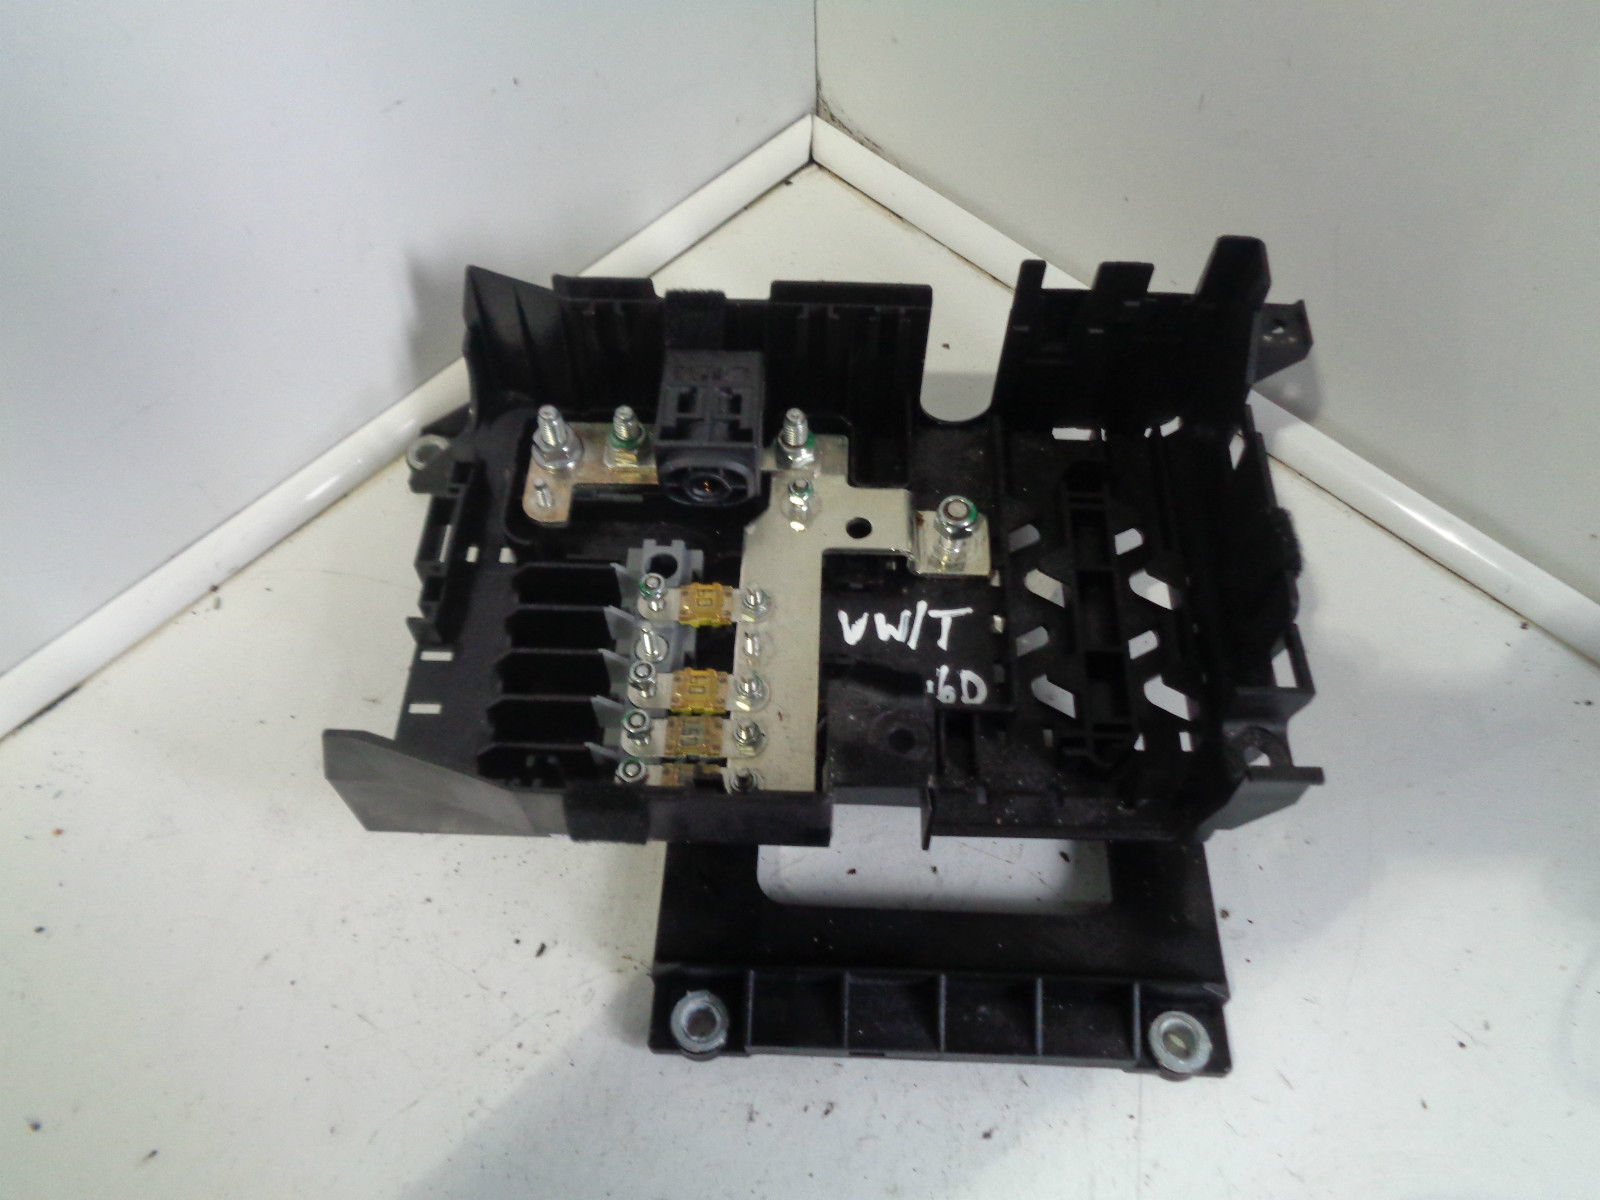 hight resolution of details about 2007 2010 vw touareg 3 0 tdi 7l main fuse box board 7l0937548c